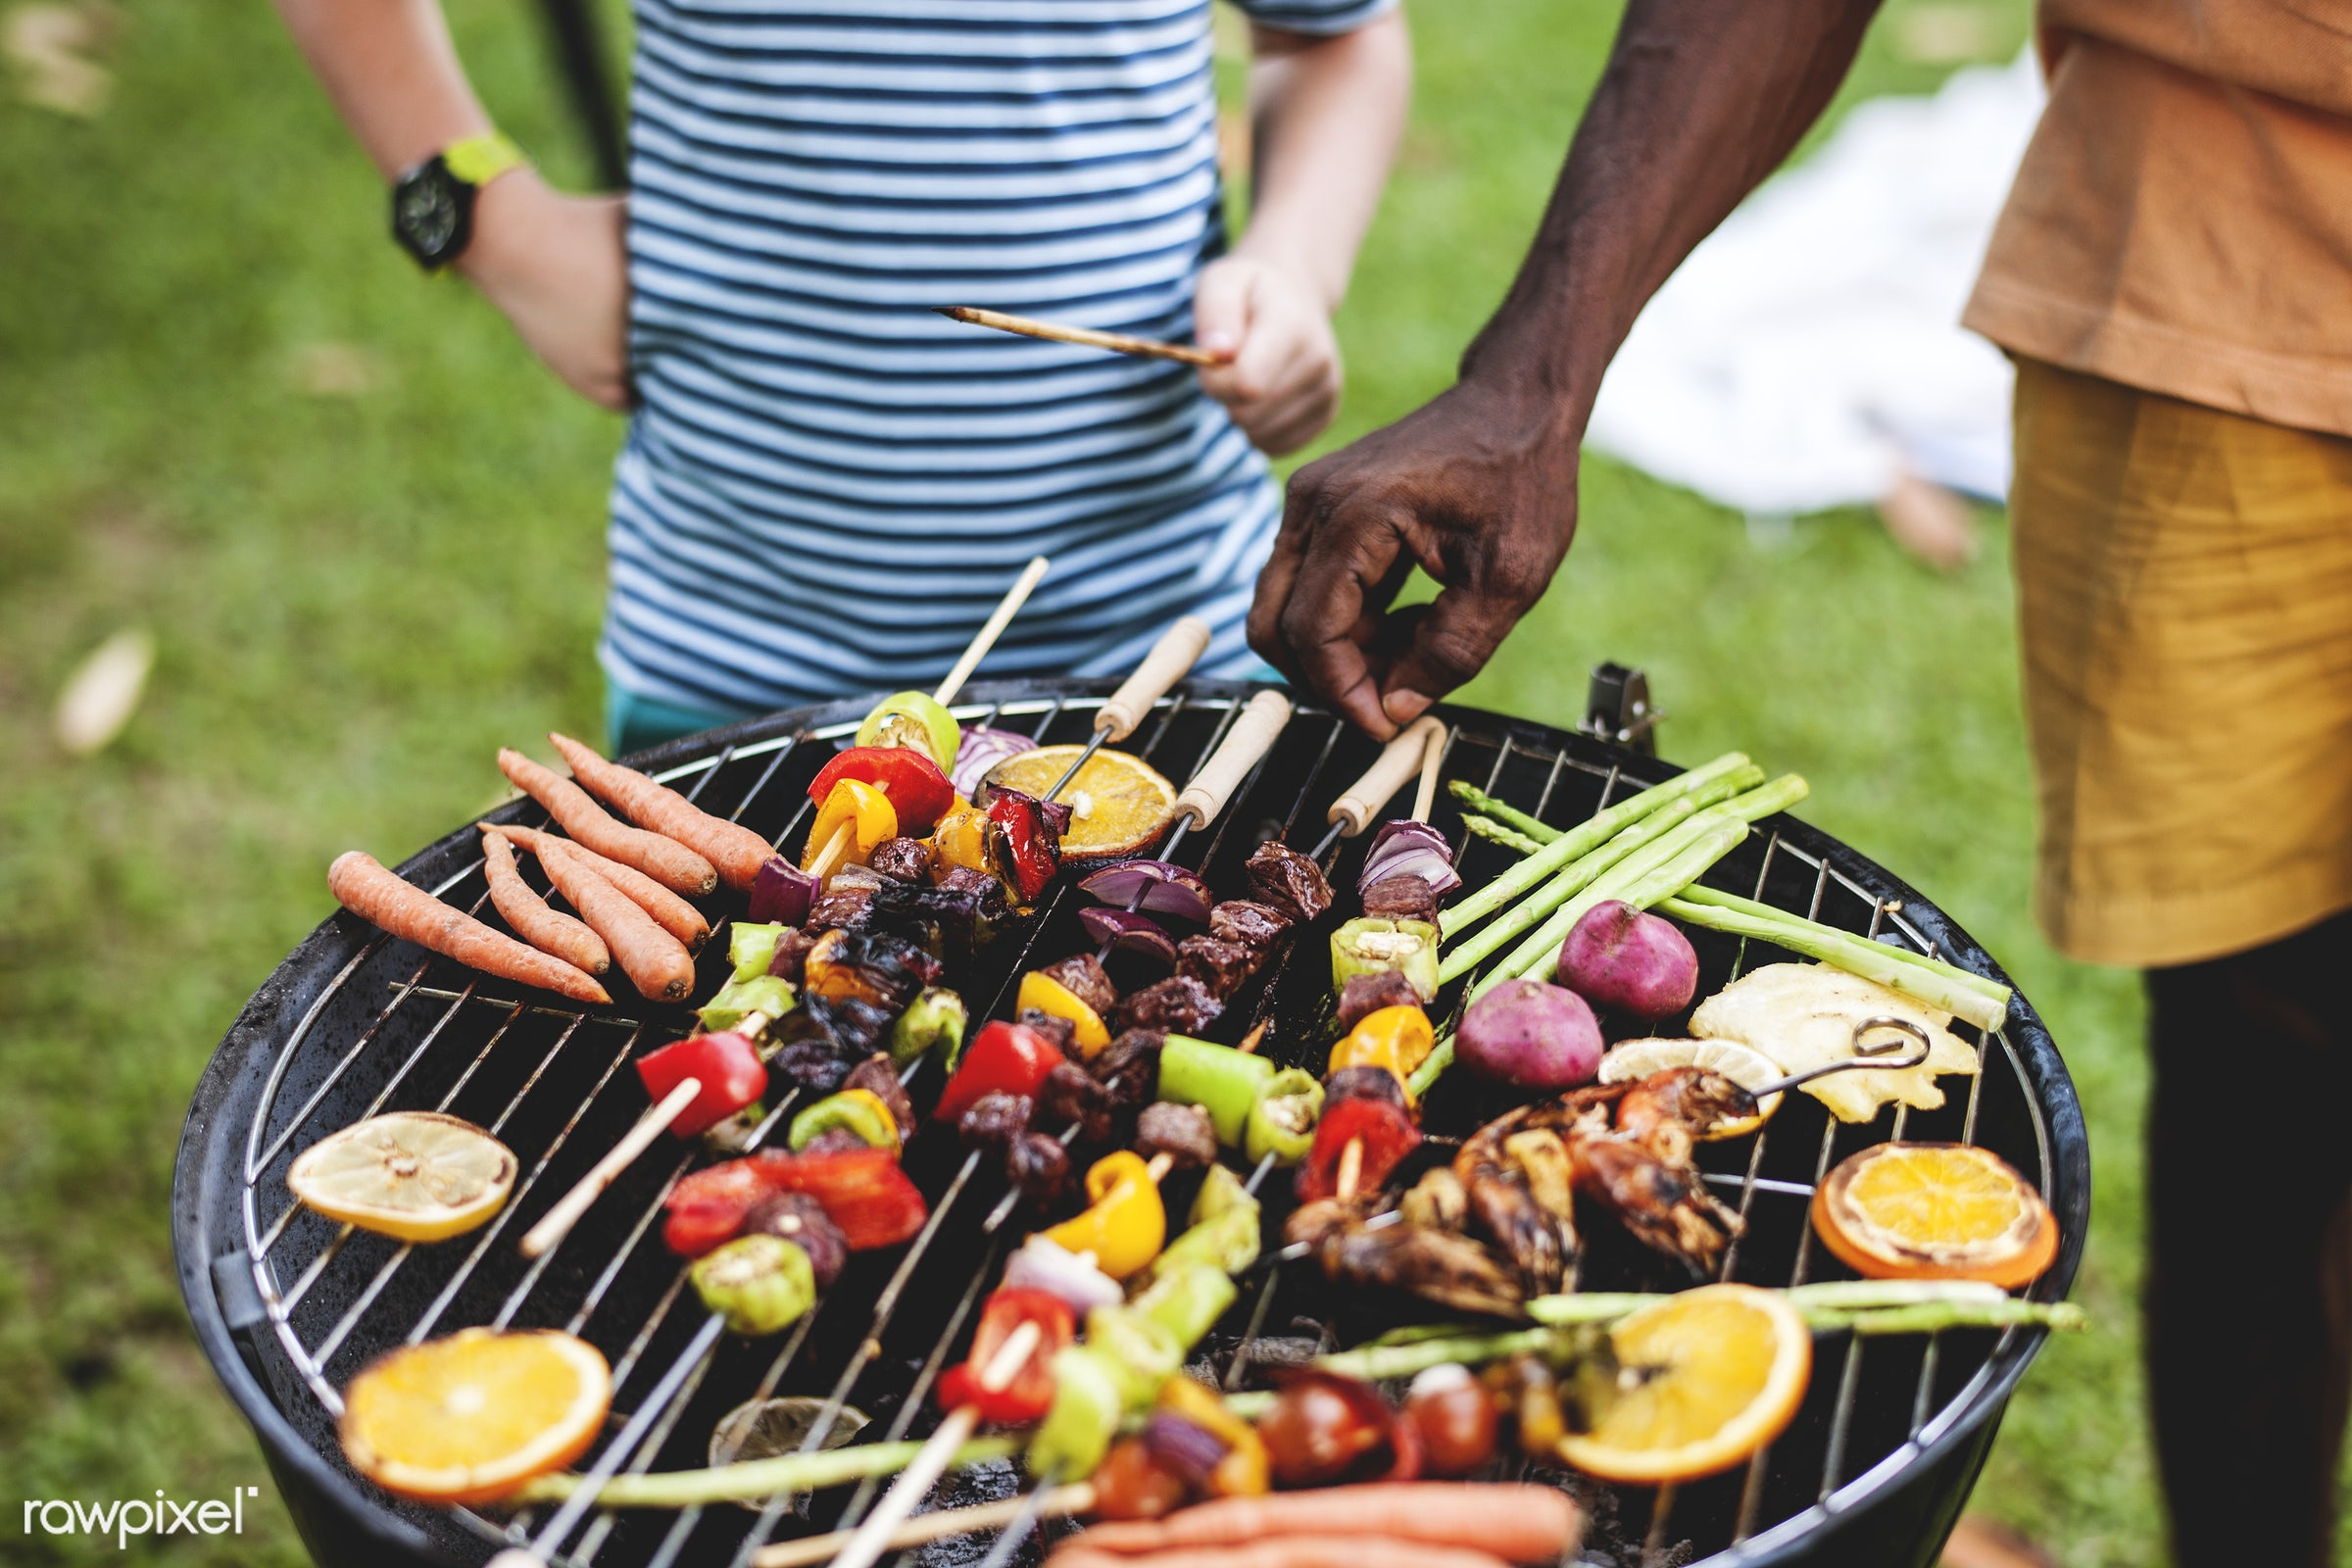 bbq, grill, backyard, barbecue, cook, cooking, cookout, diverse, family, food, friends, gathering, group, holiday, home,...